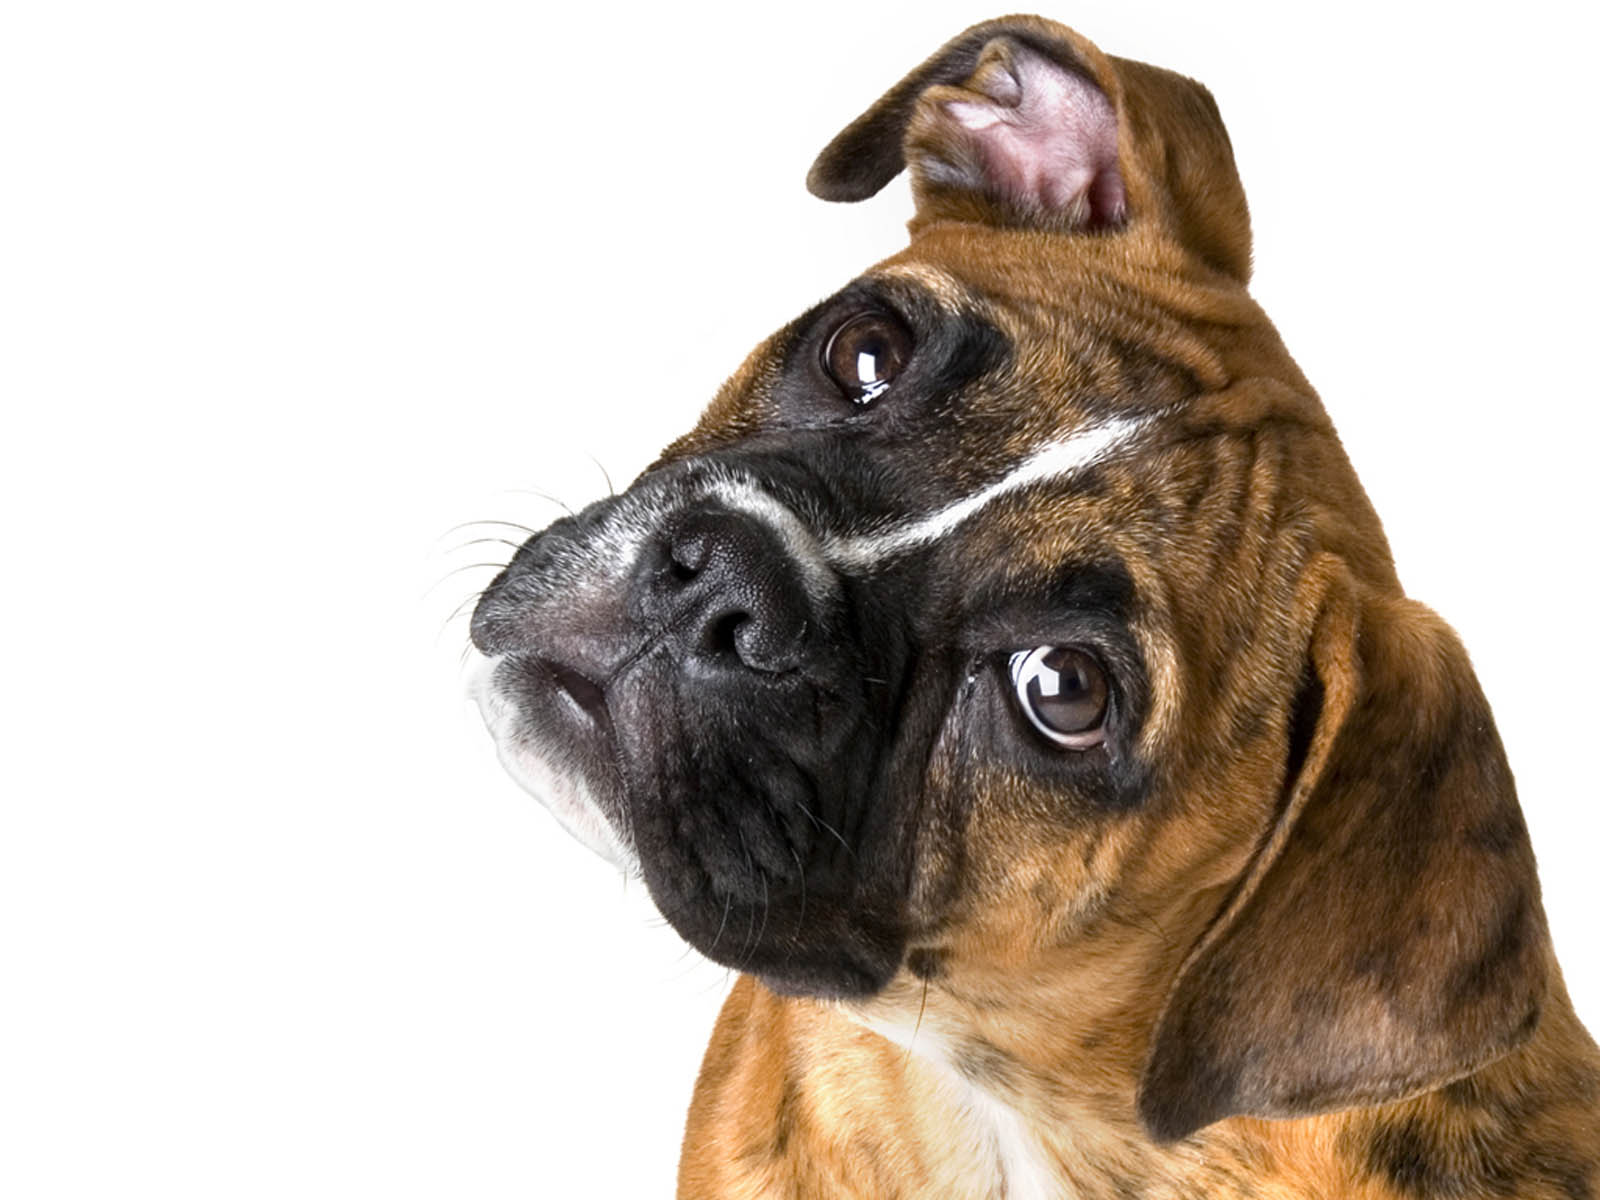 Cute Dog Png Hd Transparent Cute Dog Hd Png Images Pluspng